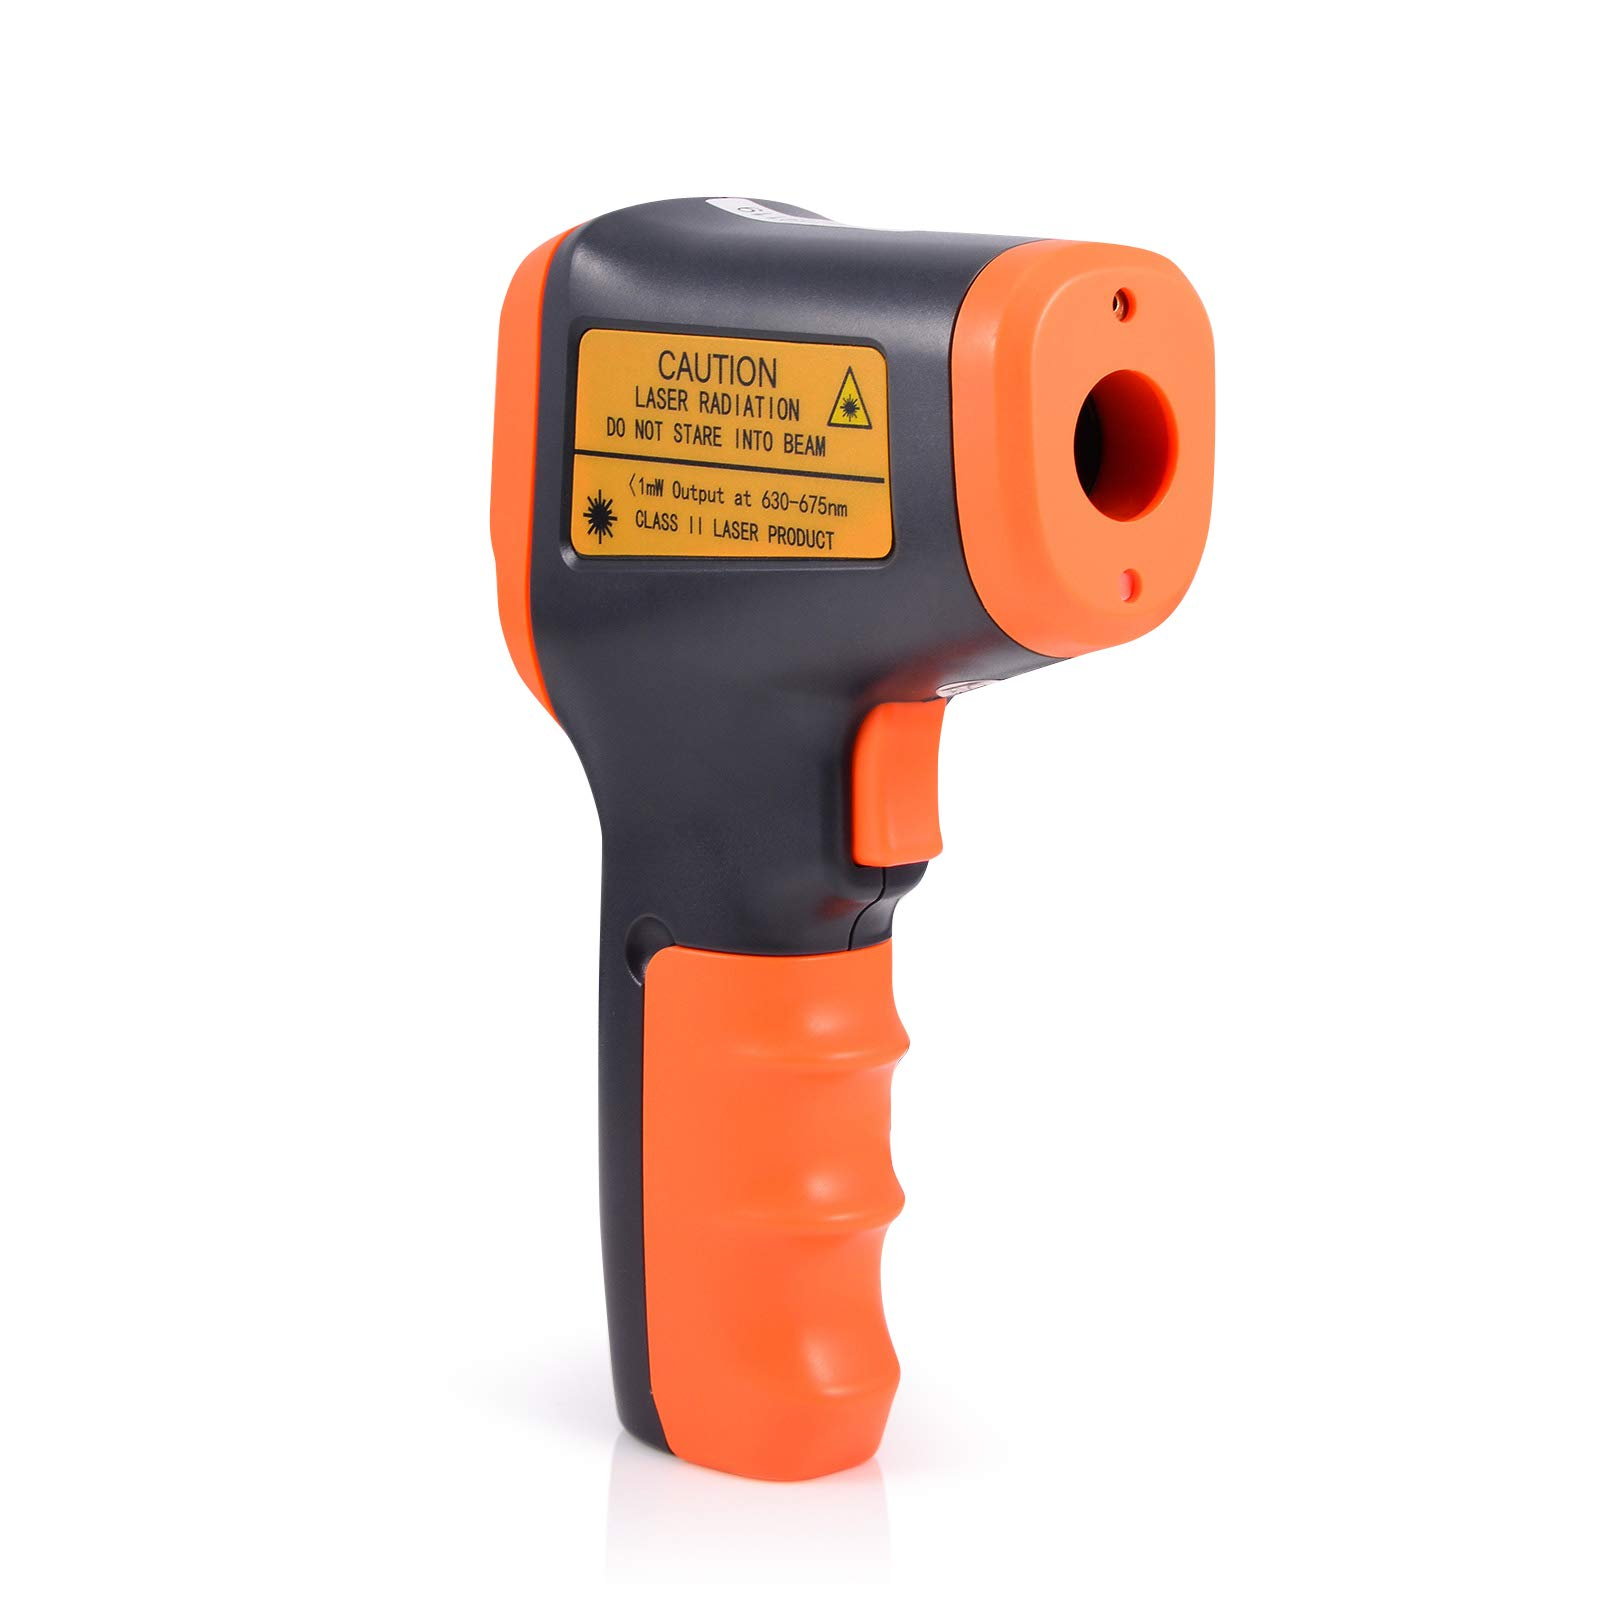 Ehdis Infrared Thermometer Non-Contact Digital LCD Temperature Gun -50°C~650°C (-58°F~1202°F) for Industrial Testing, Vehicle Repair, Garden, Home, Outdoor